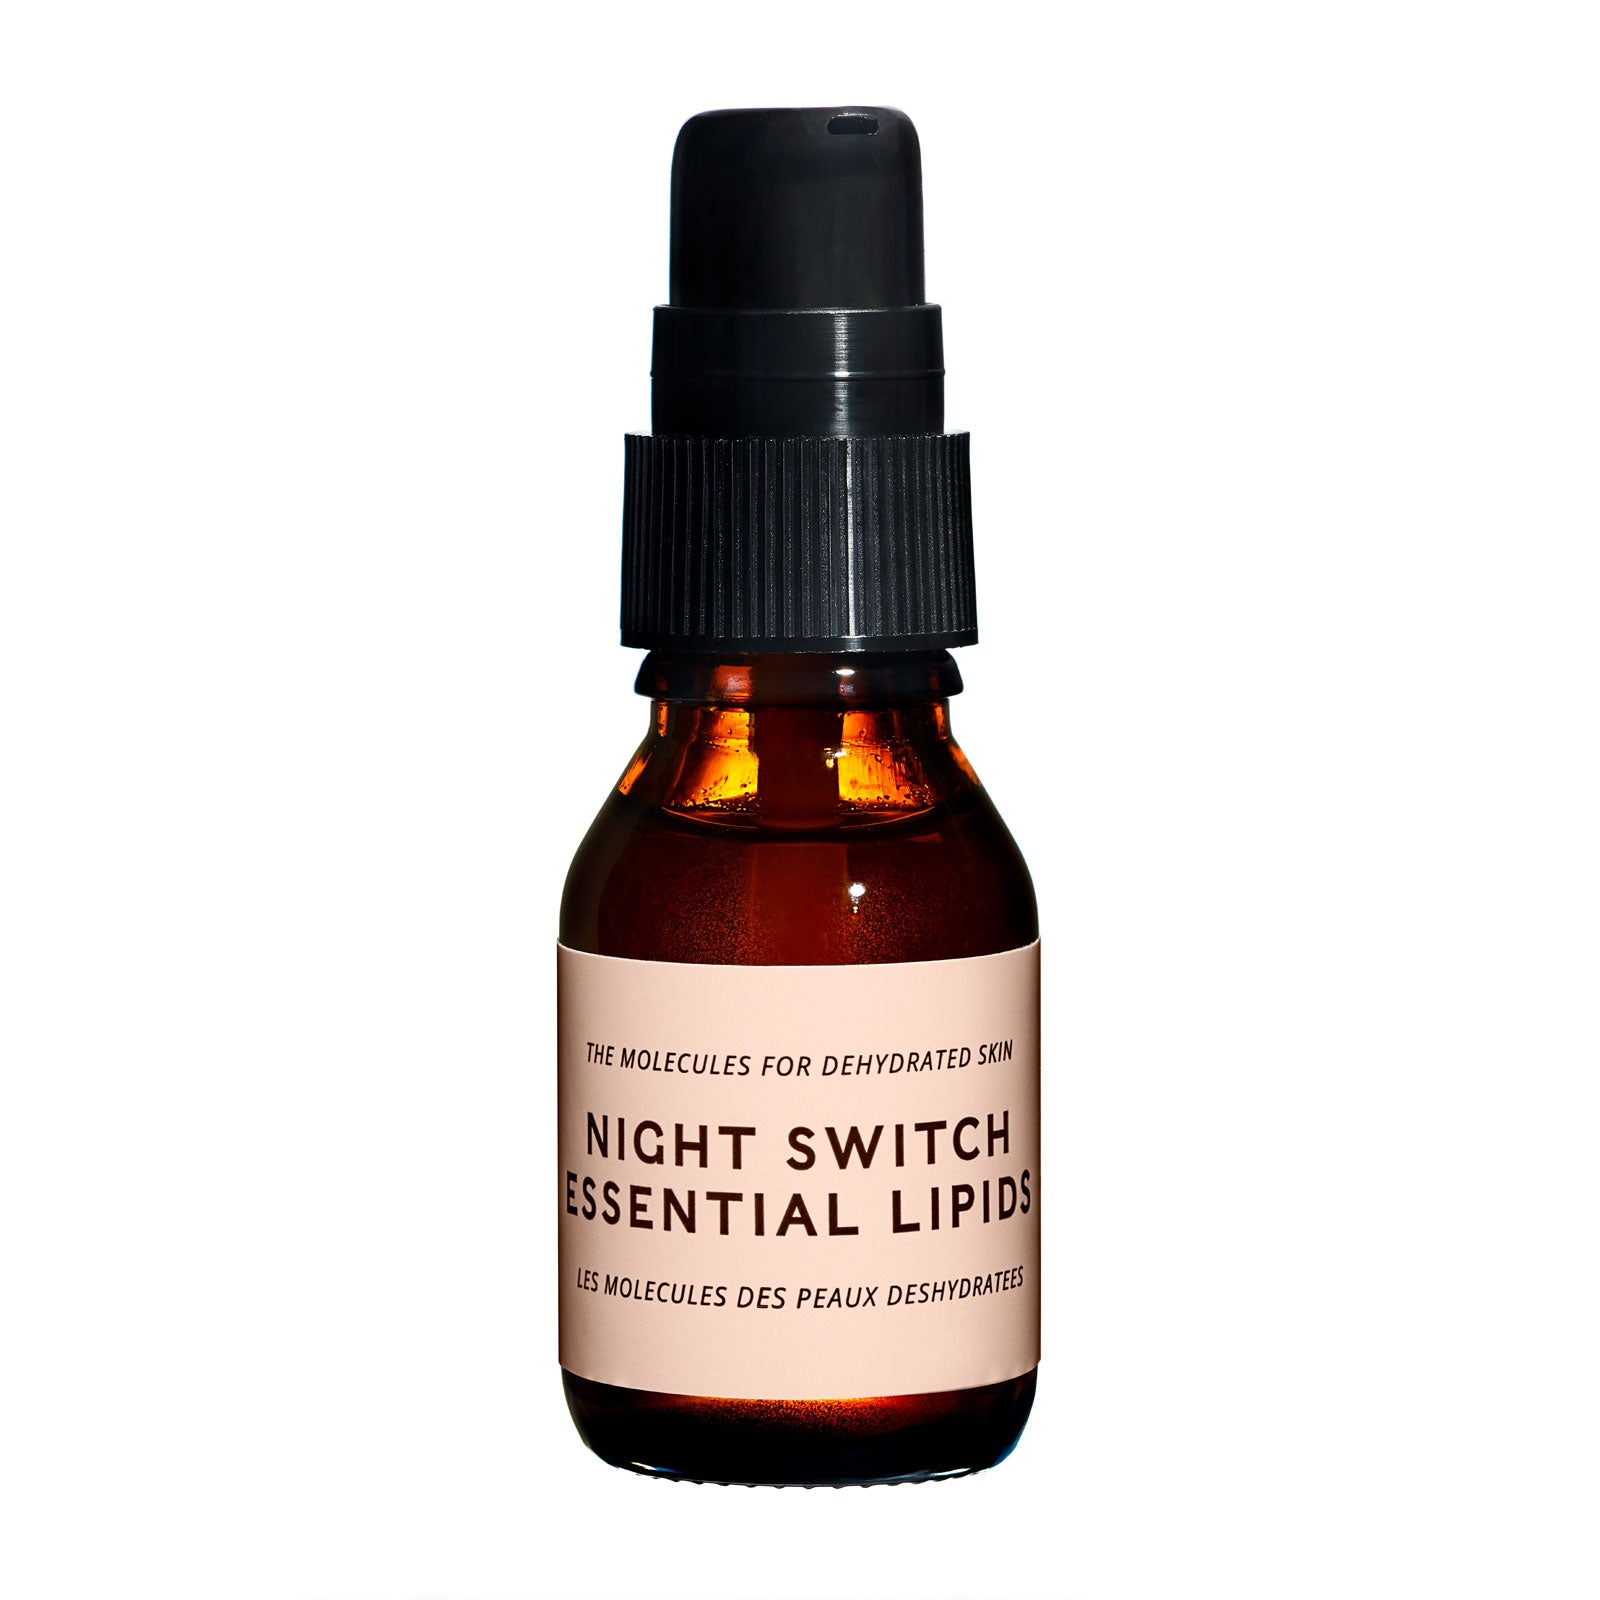 lixirskin Night Switch Essential Lipids 15ml